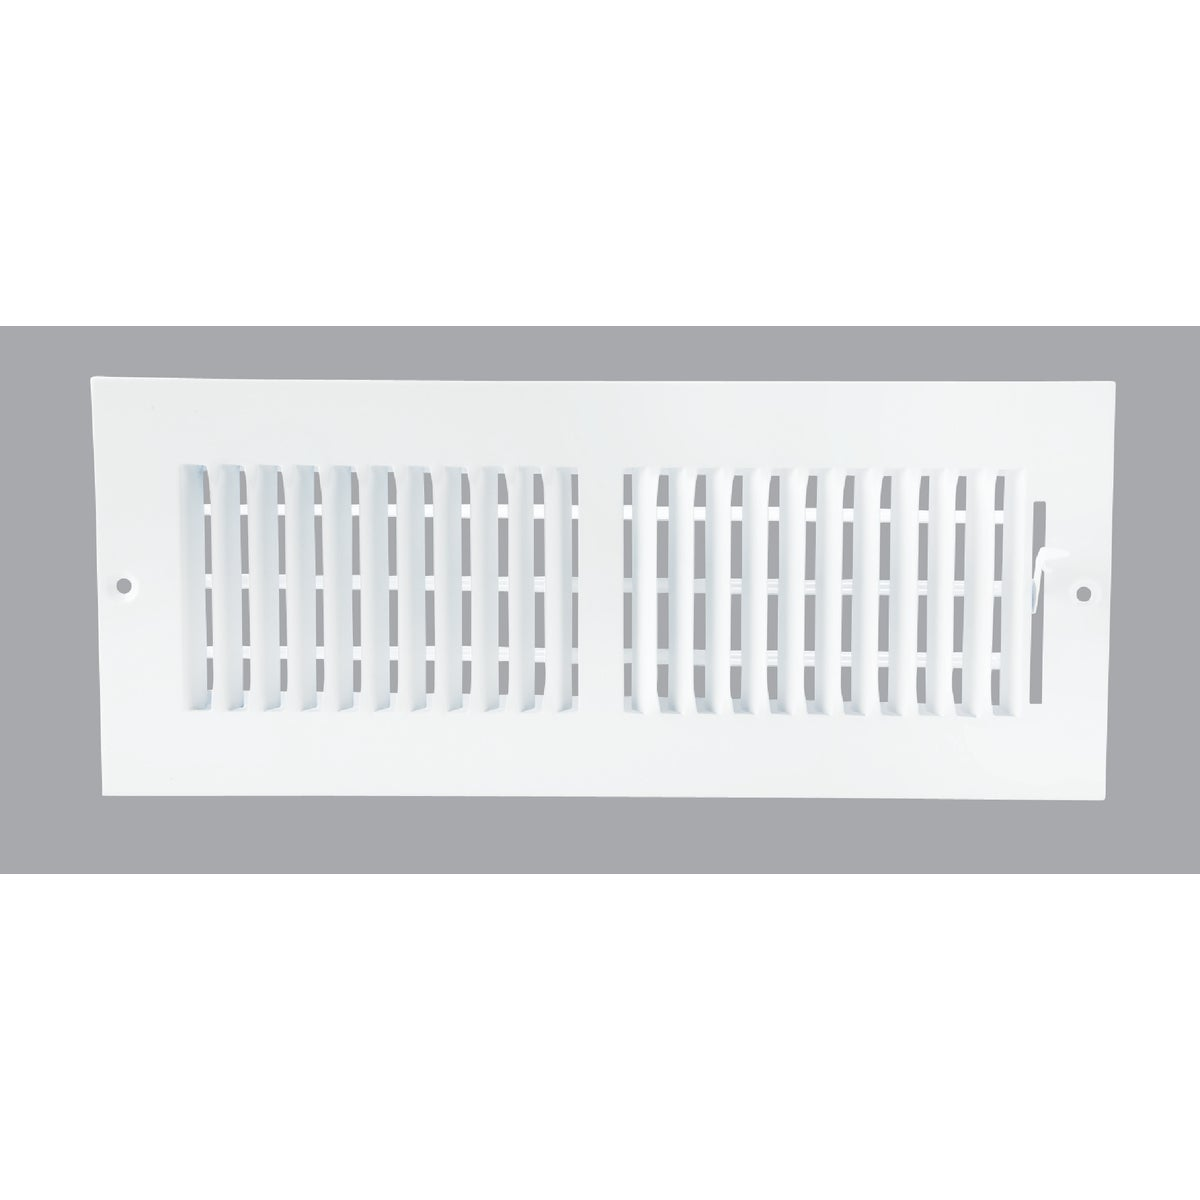 Home Impression 2-Way Wall Register, 2SW1204WH-B